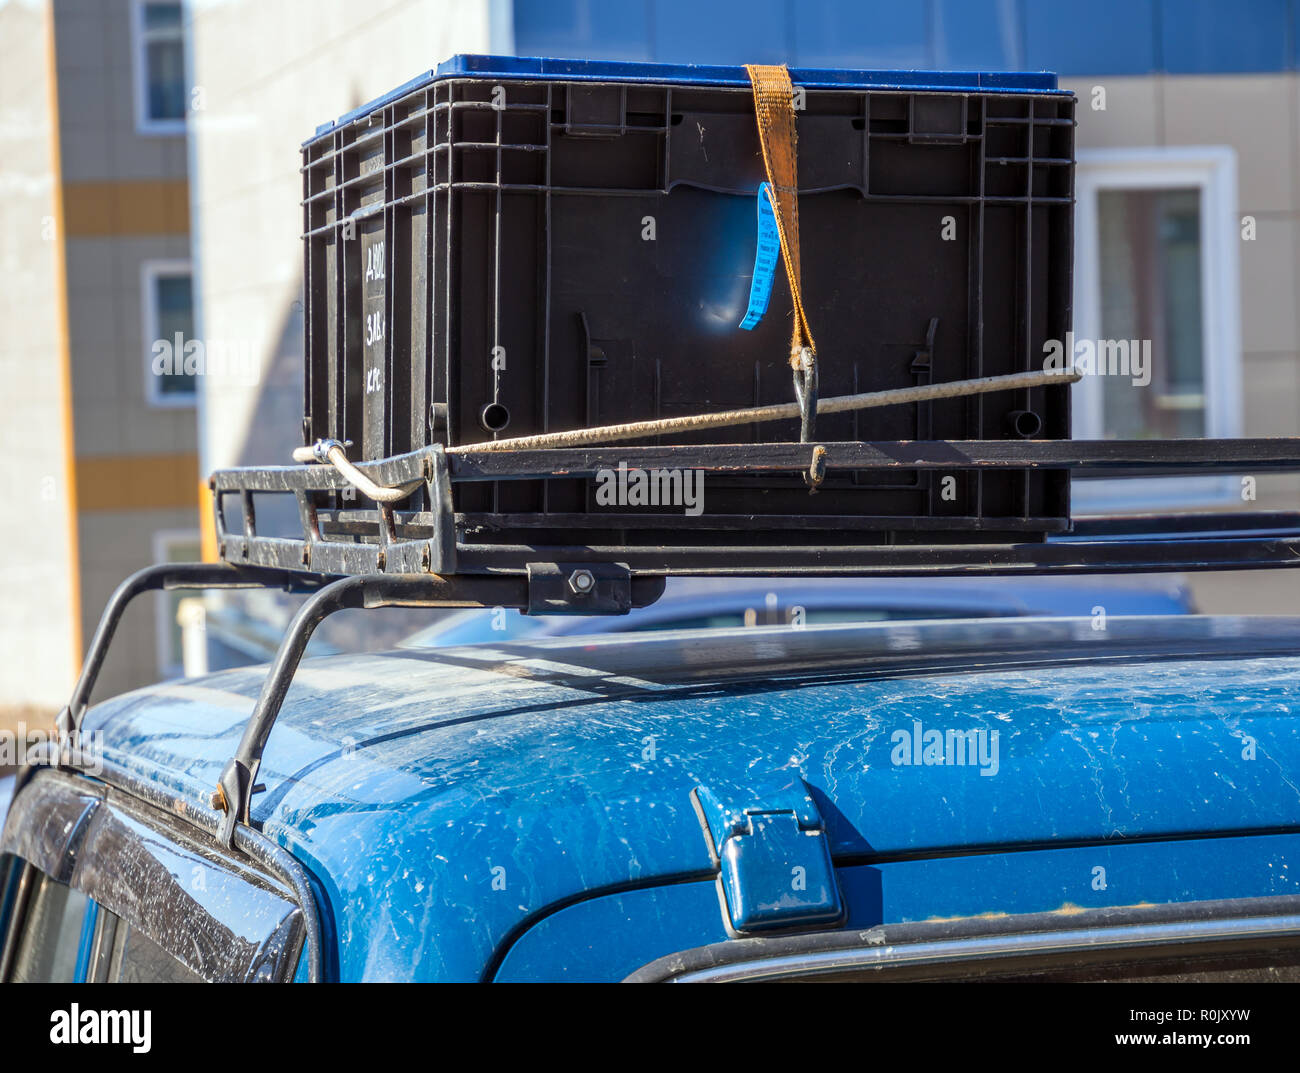 Cargo mounted on the trunk of the car - Stock Image